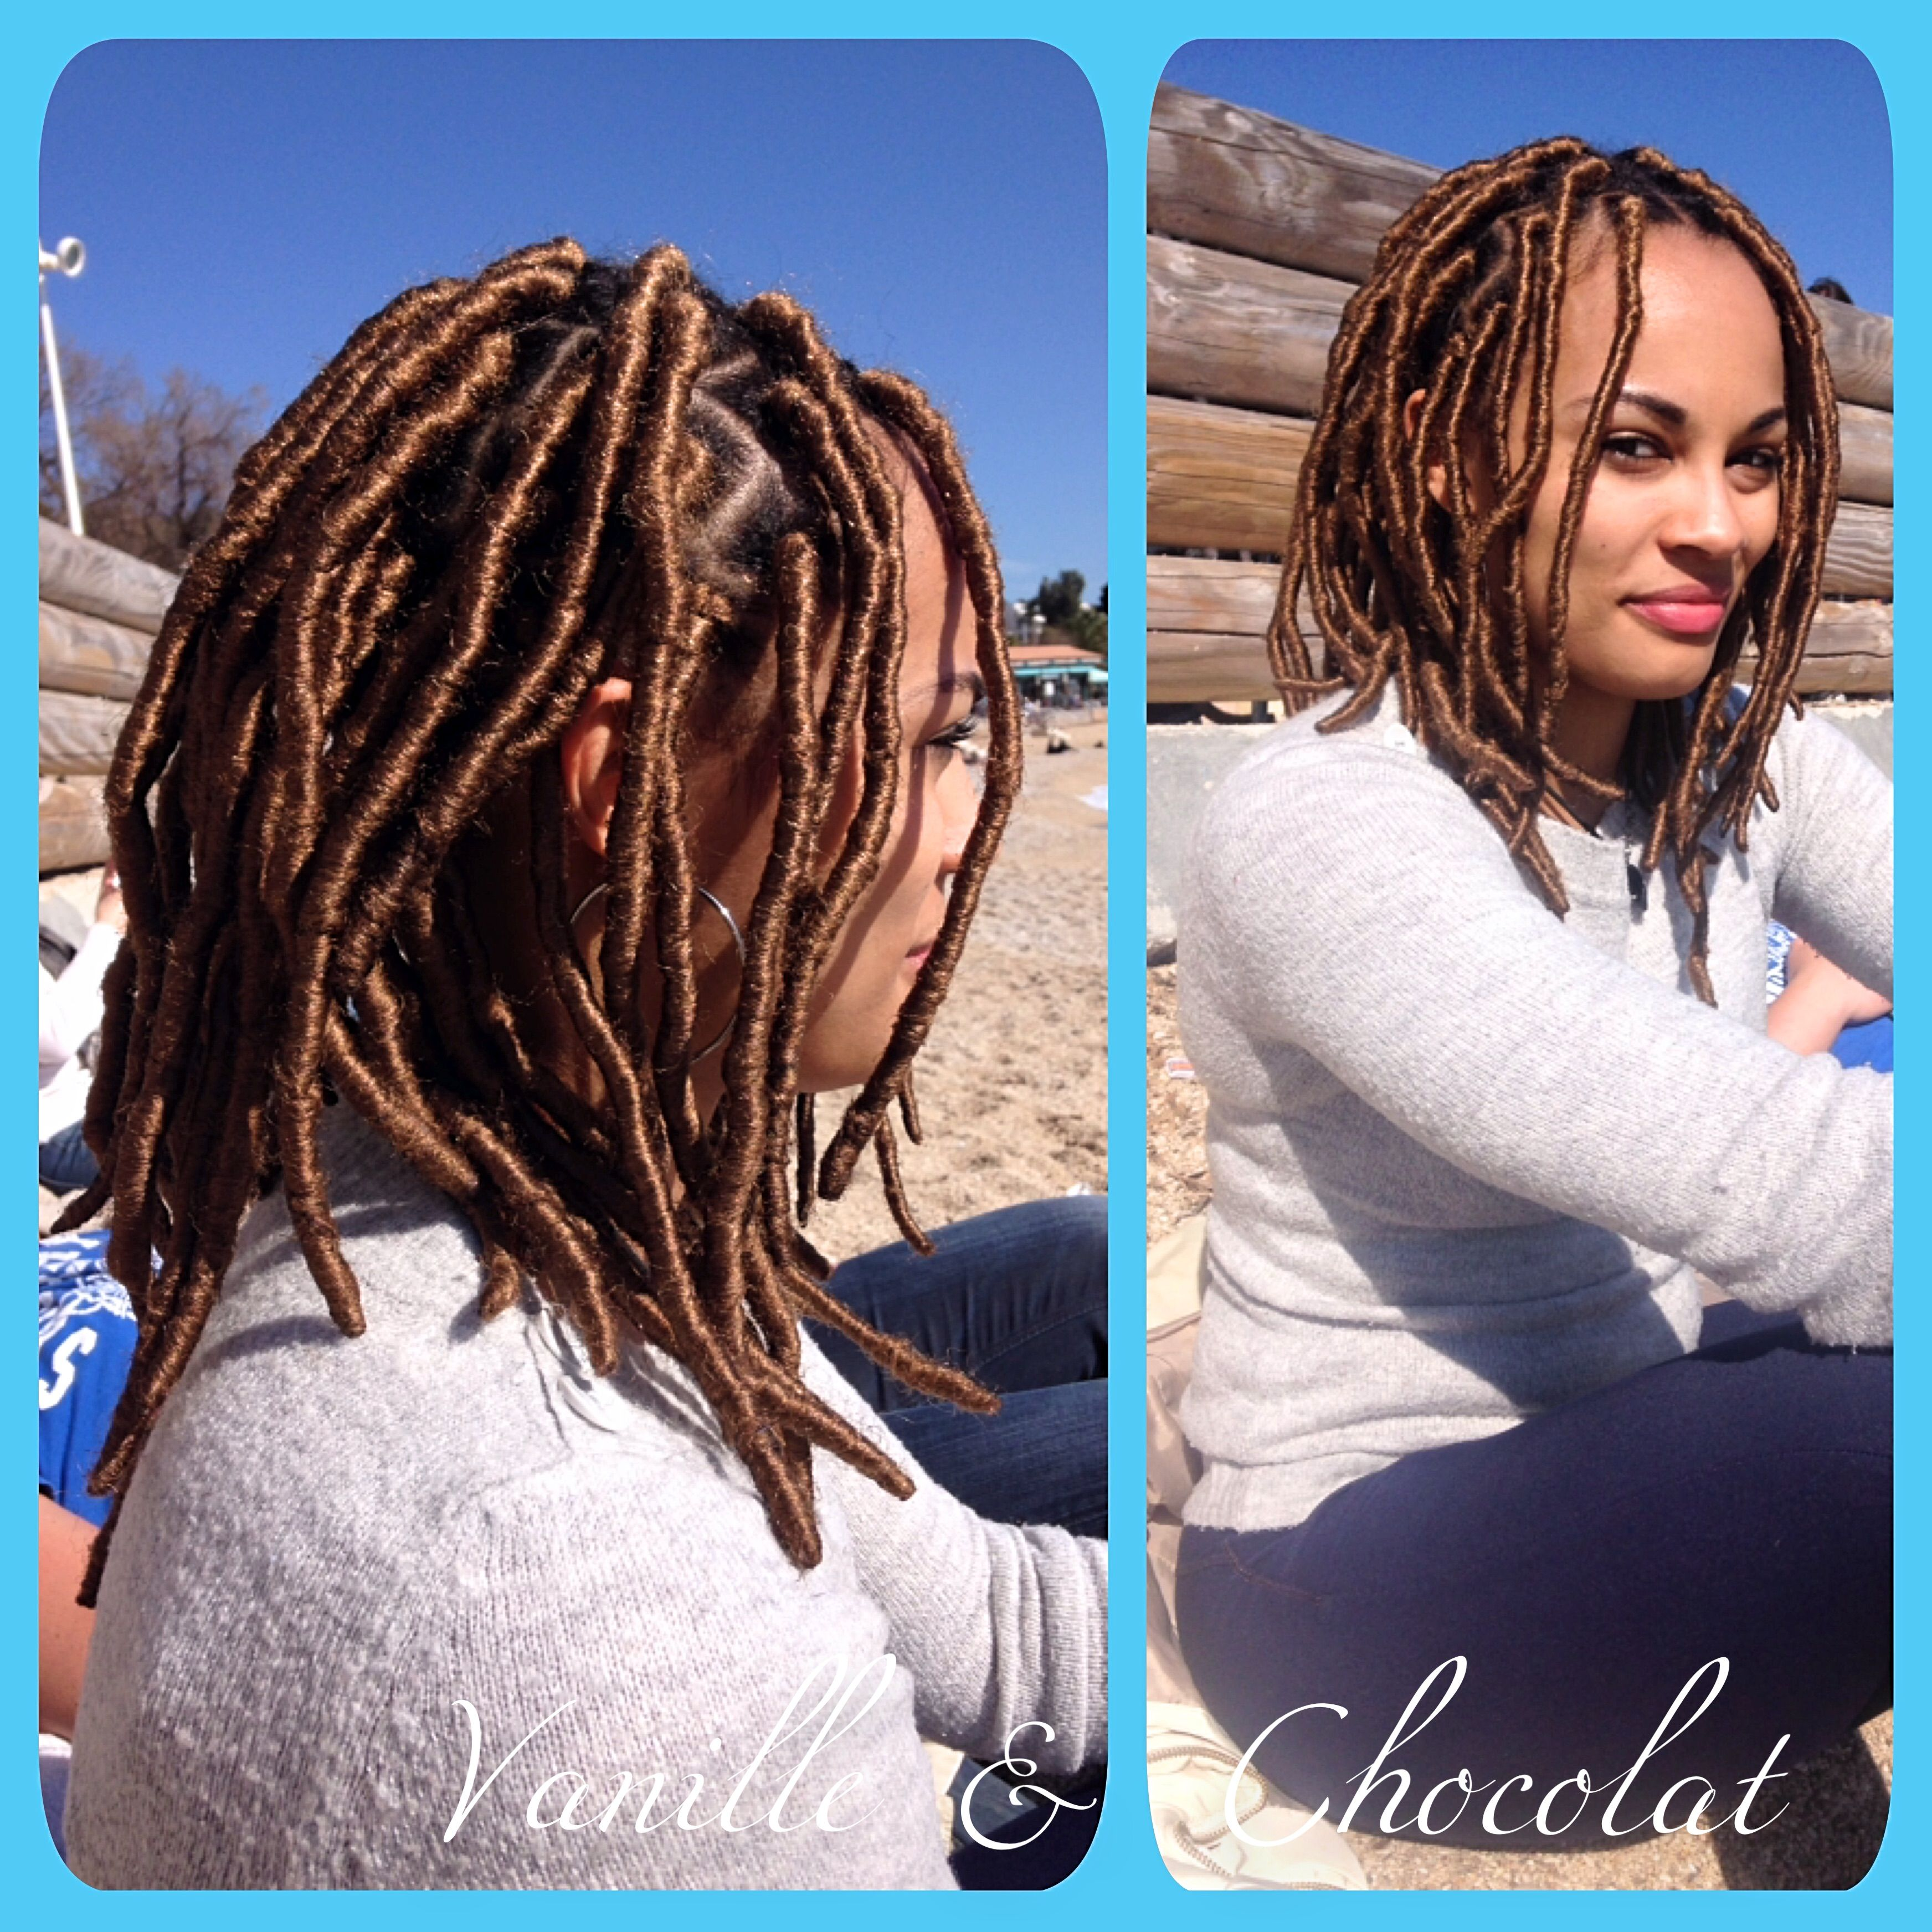 Salon de coiffure pour fausses locks coiffures modernes for Salon de coiffure dreadlocks paris